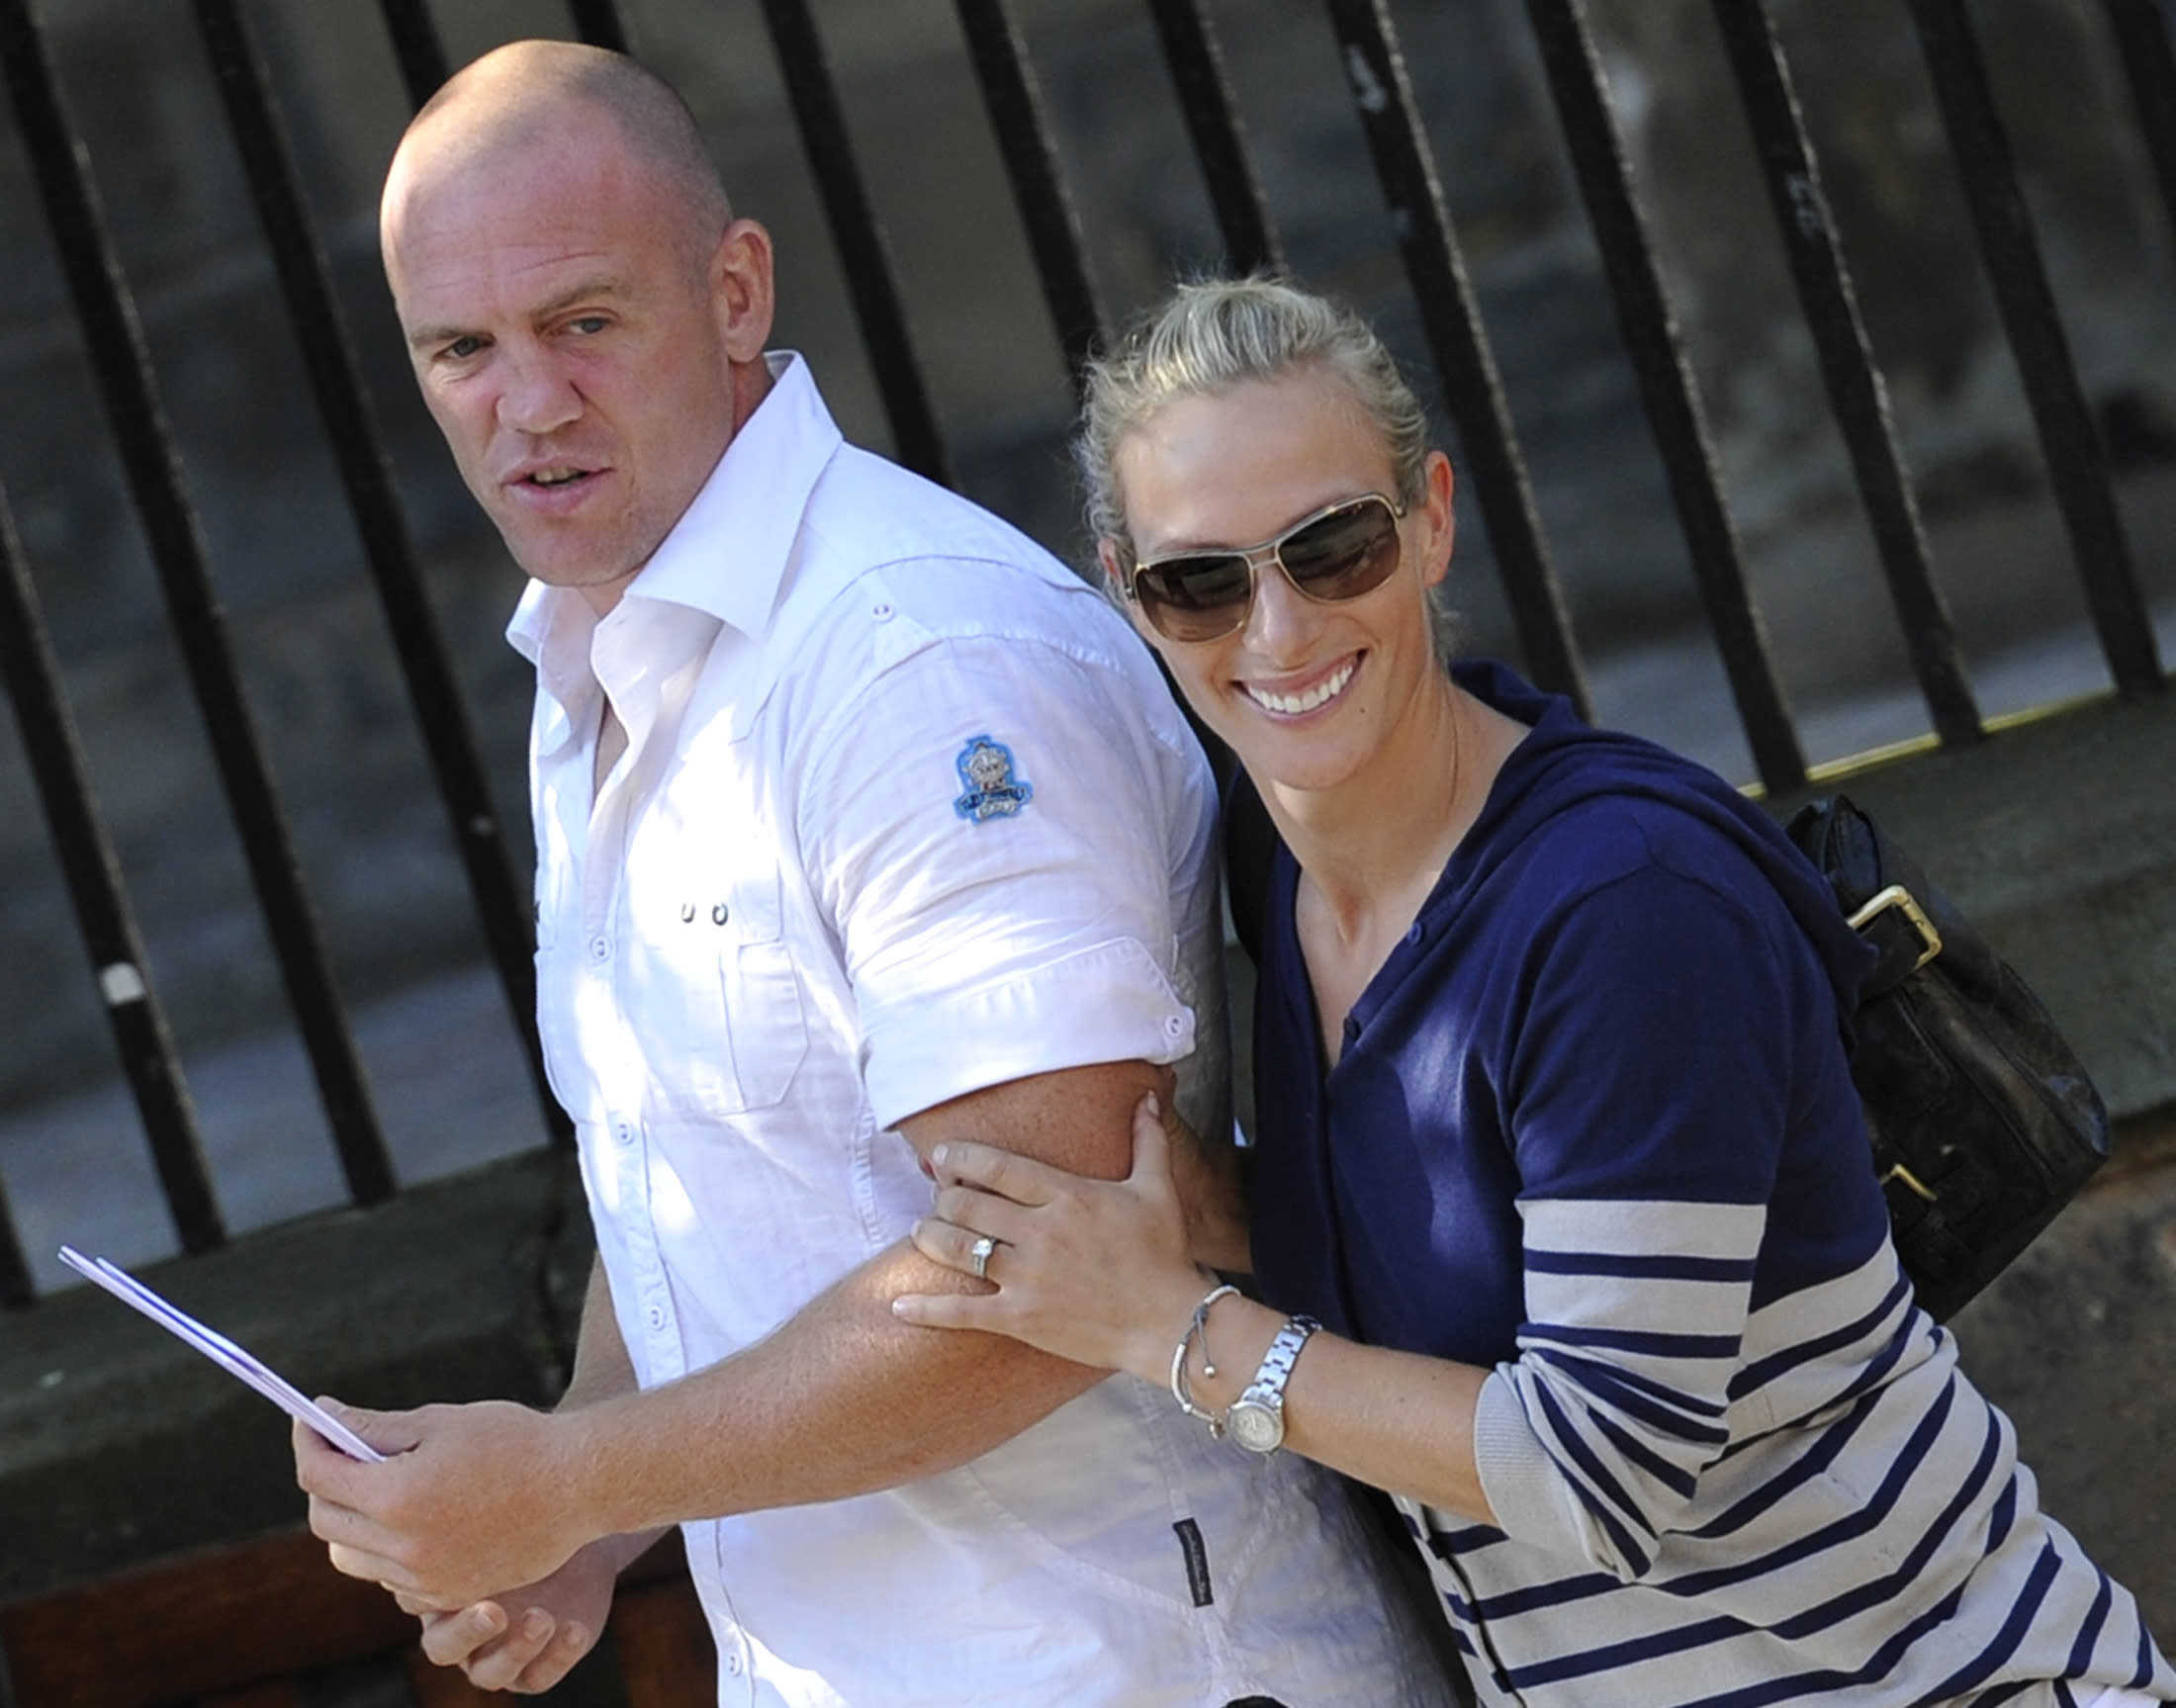 Britain's Zara Phillips, the eldest granddaughter of Queen Elizabeth, and England rugby captain Mike Tindall leave after their wedding rehearsal at Canongate Kirk in Edinburgh, Scotland July 29, 2011.    REUTERS/Dylan Martinez   (BRITAIN - Tags: ENTERTAINMENT SOCIETY ROYALS SPORT)